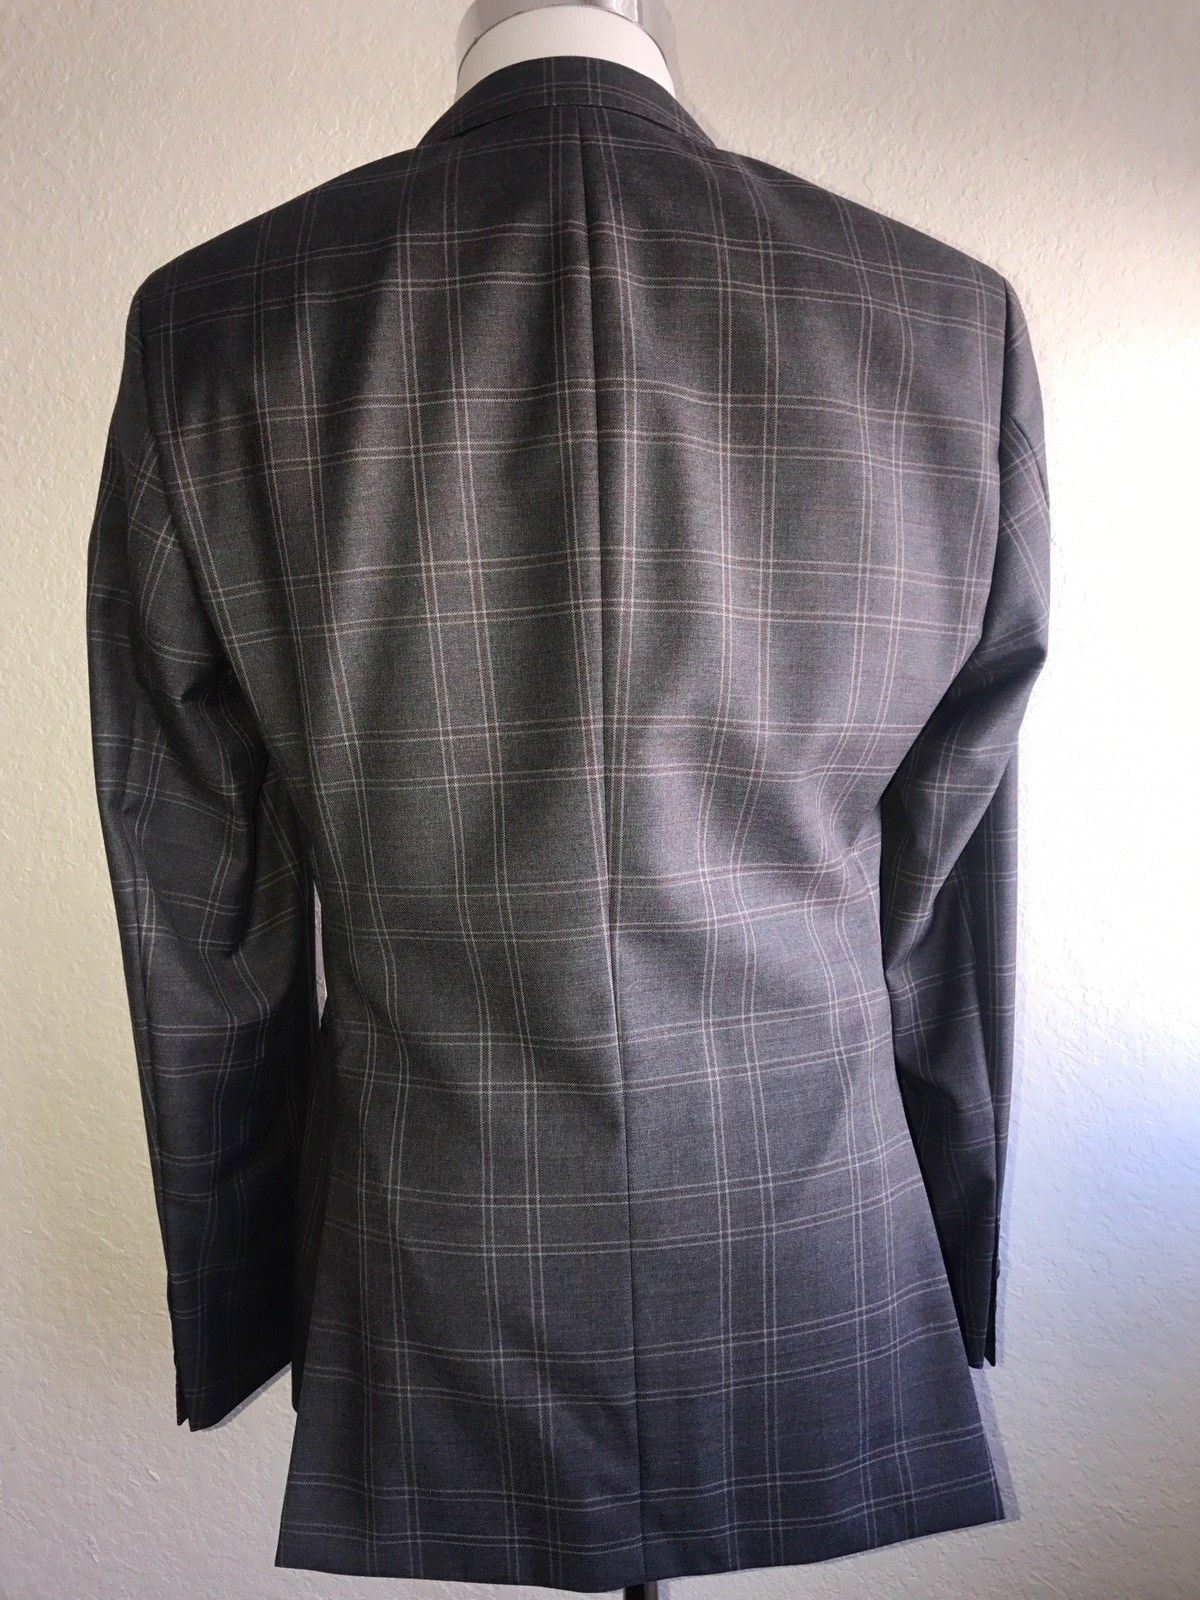 NWT $645 Boss Hugo Boss Ross-5 Wool Open Gray Sport Jacket 42R US (52 Eu)